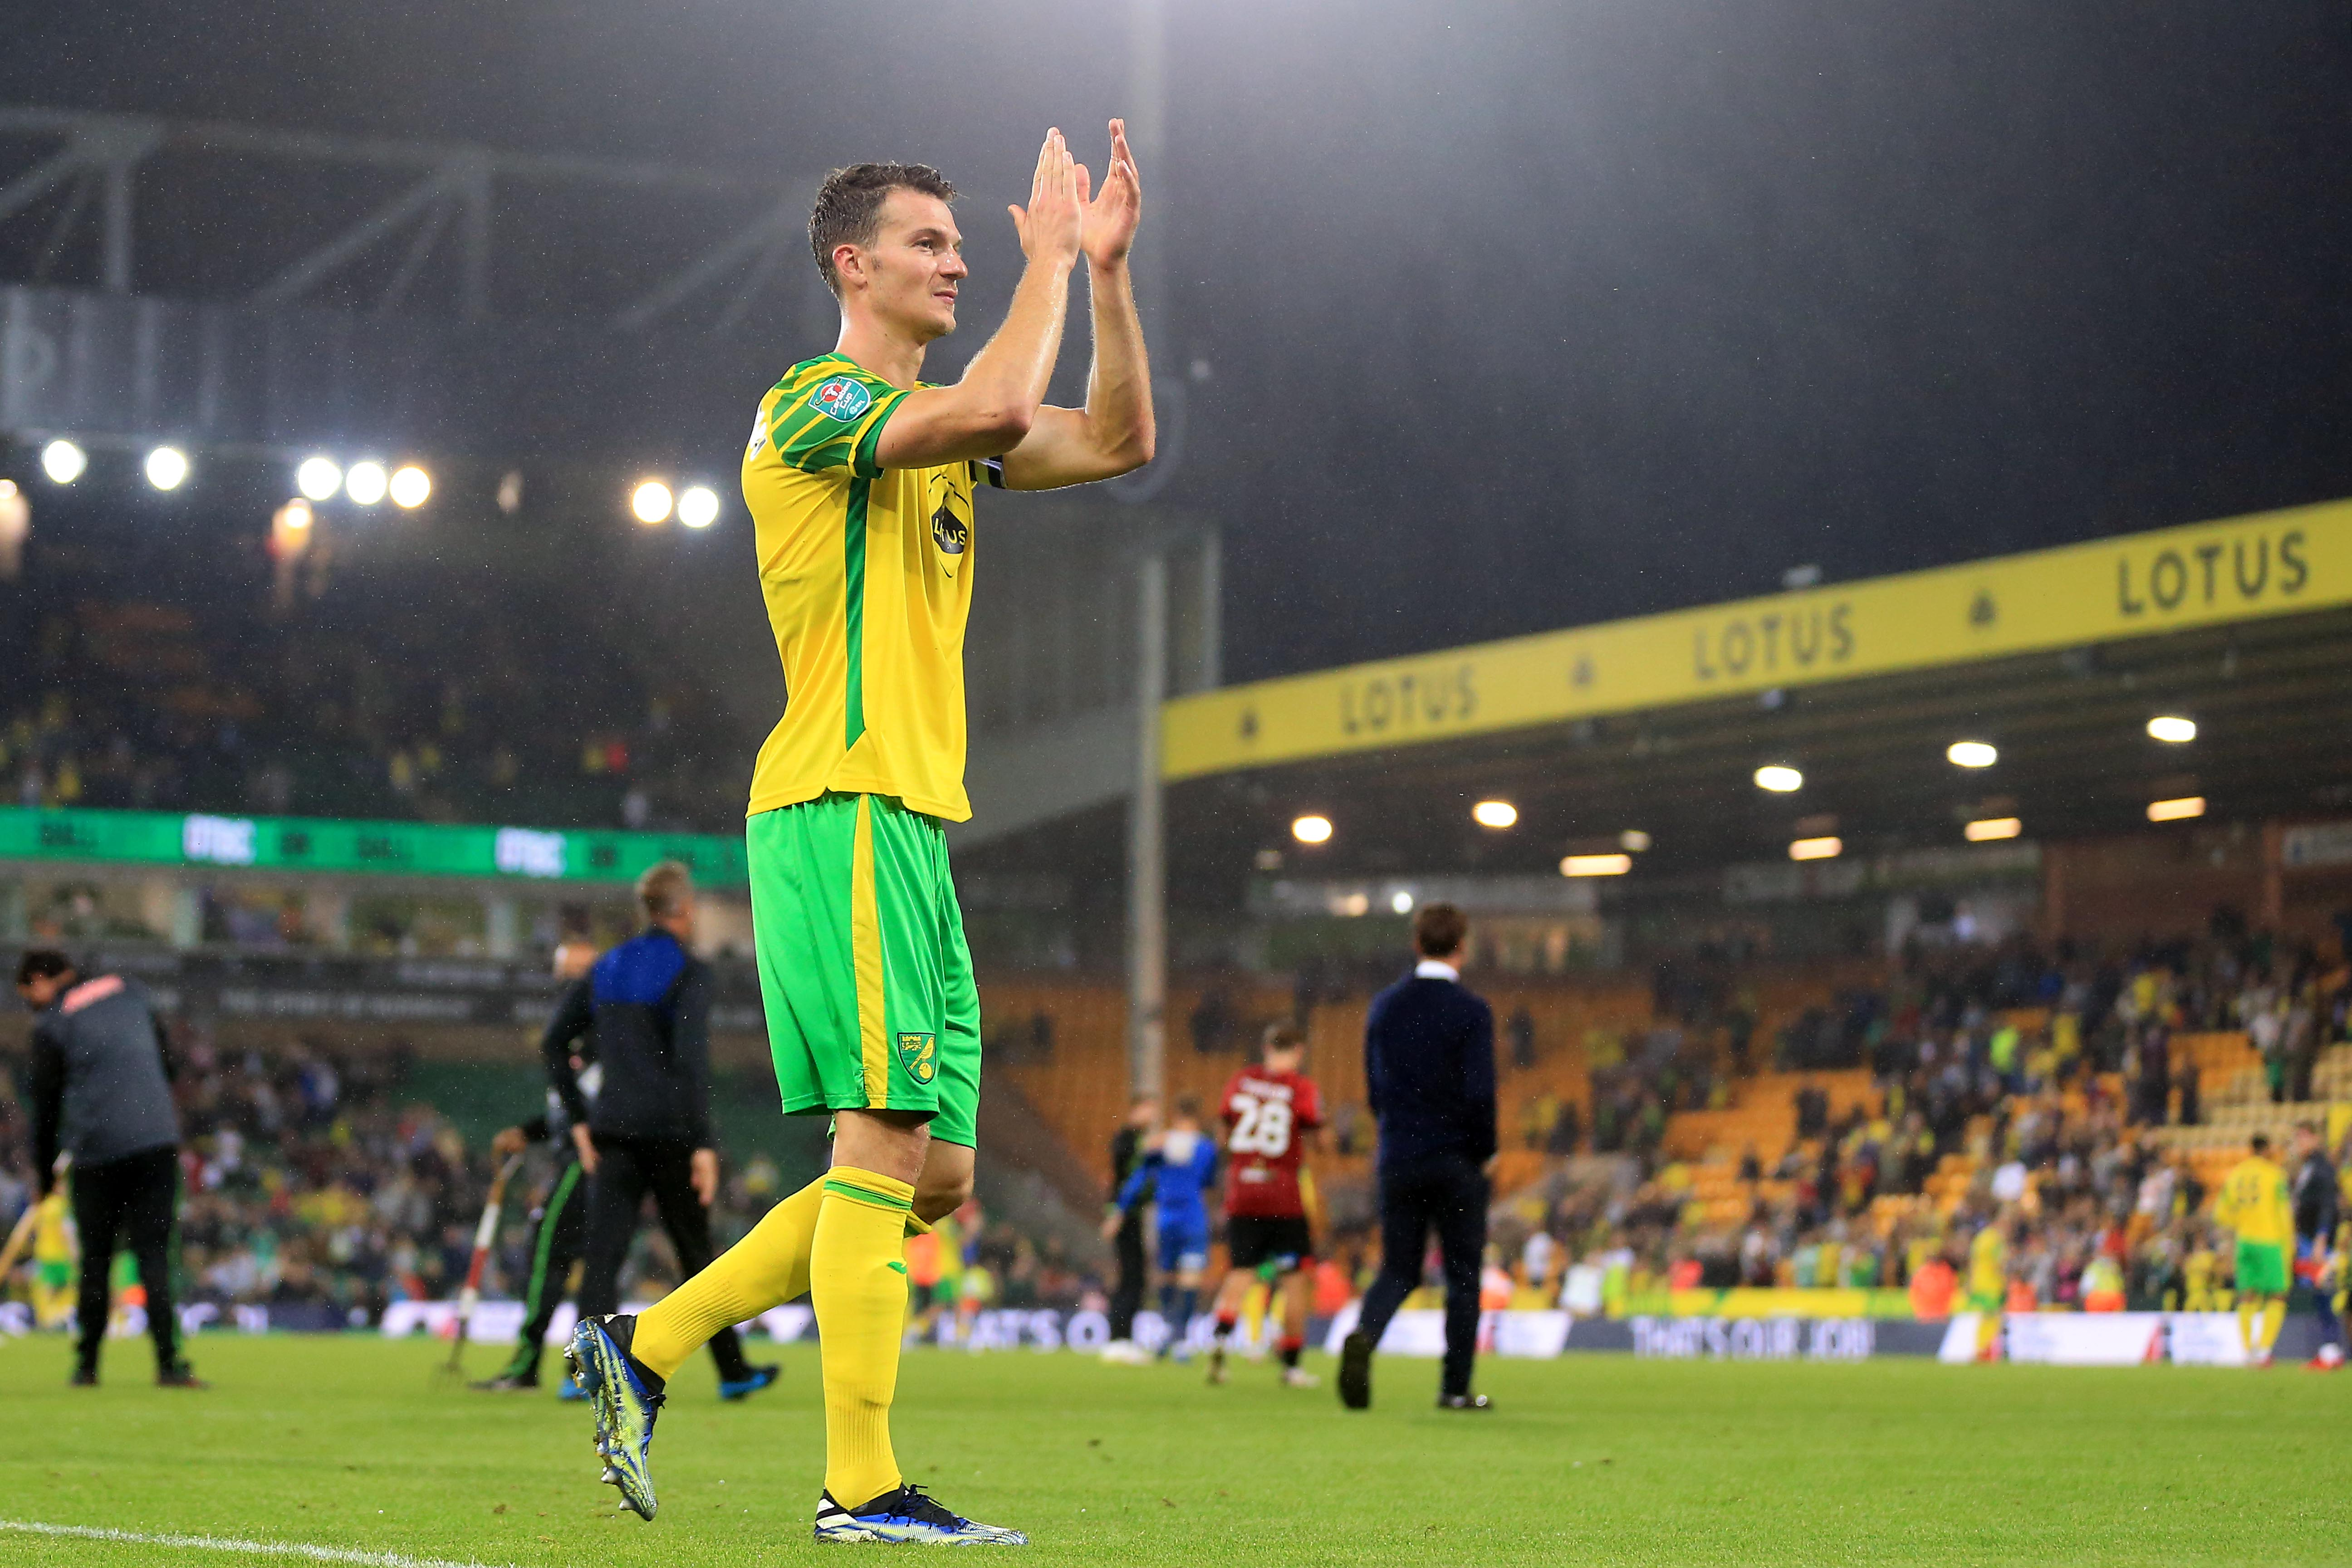 Norwich City v AFC Bournemouth - Carabao Cup Second Round